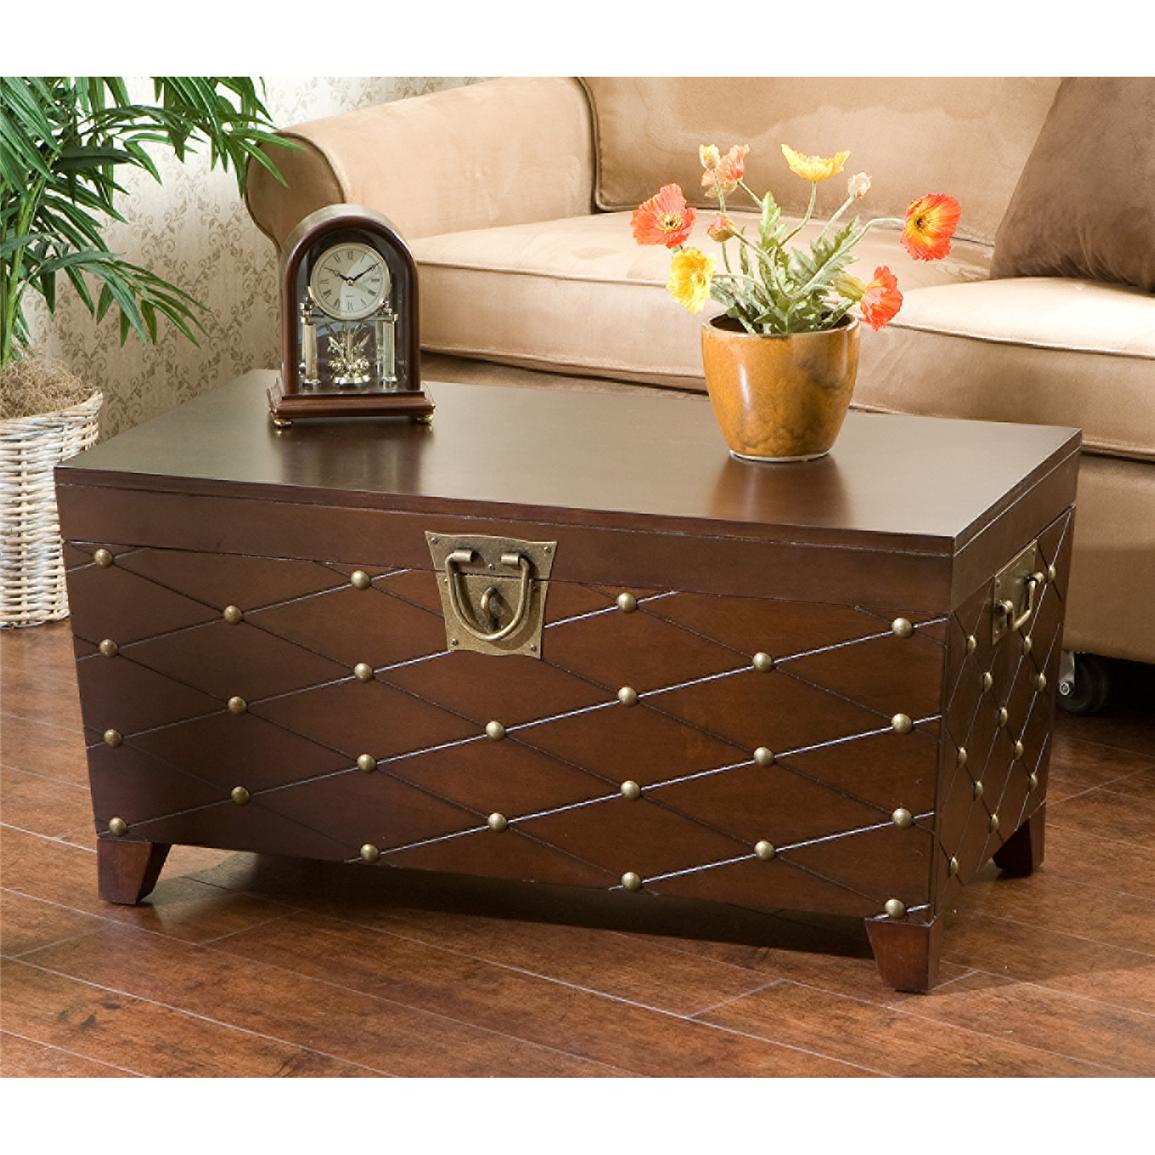 Caldwell Trunk Cocktail Table, Espresso